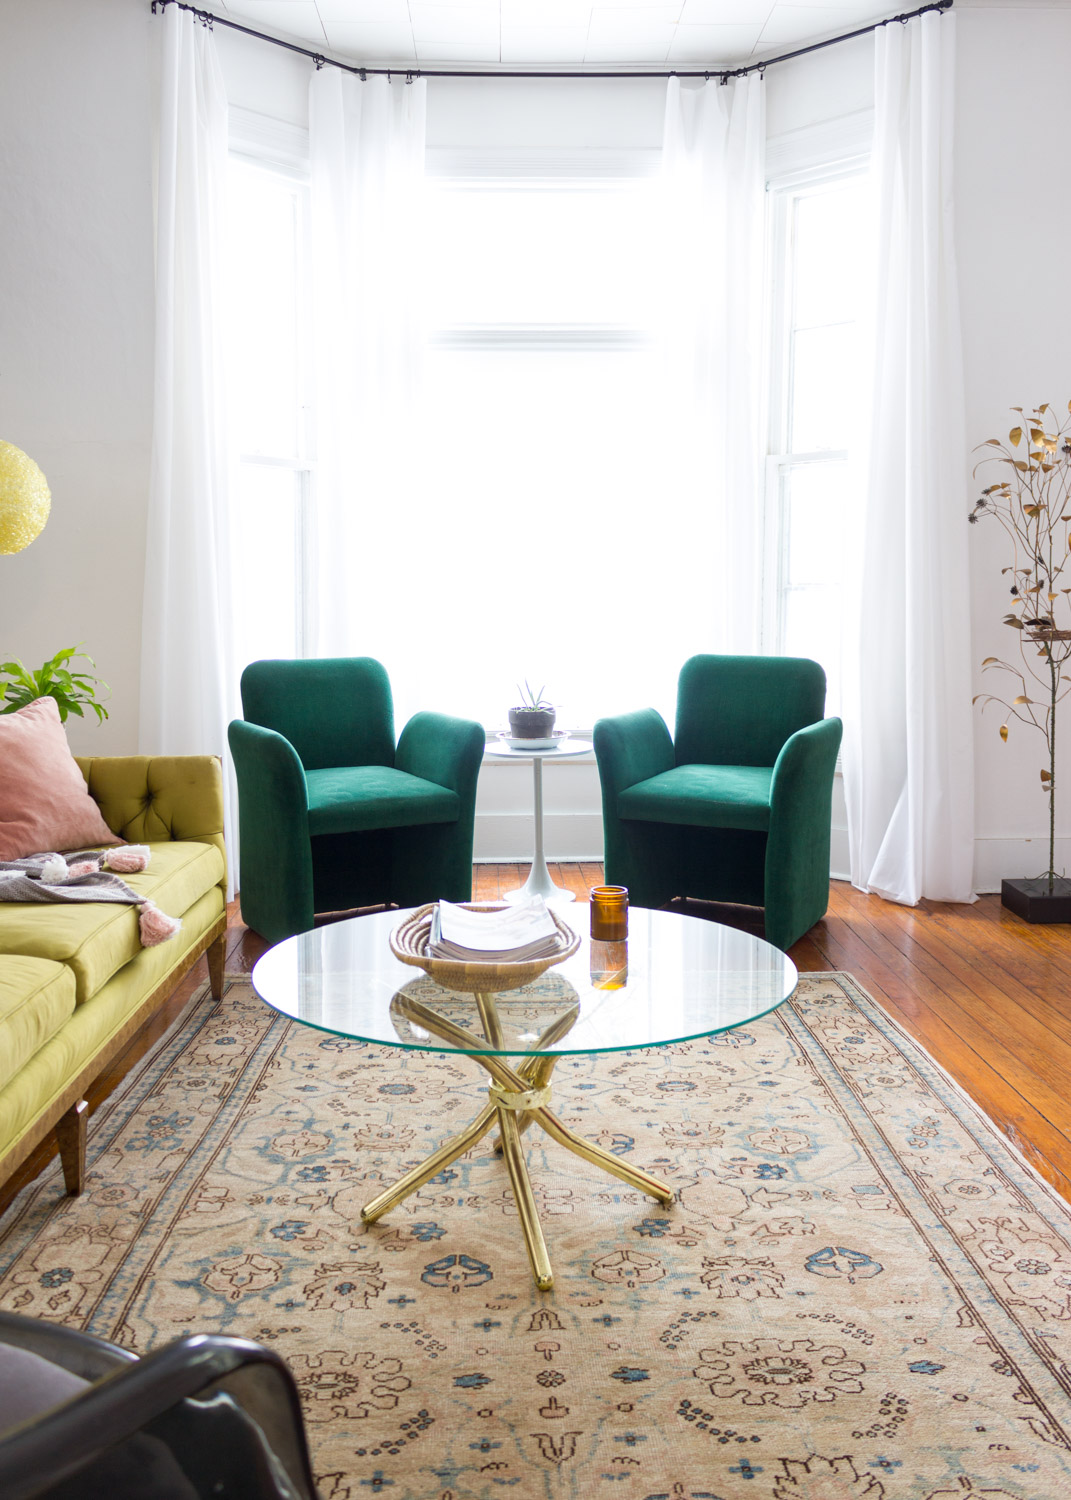 Victorian modern living room with green vintage 1980s chairs